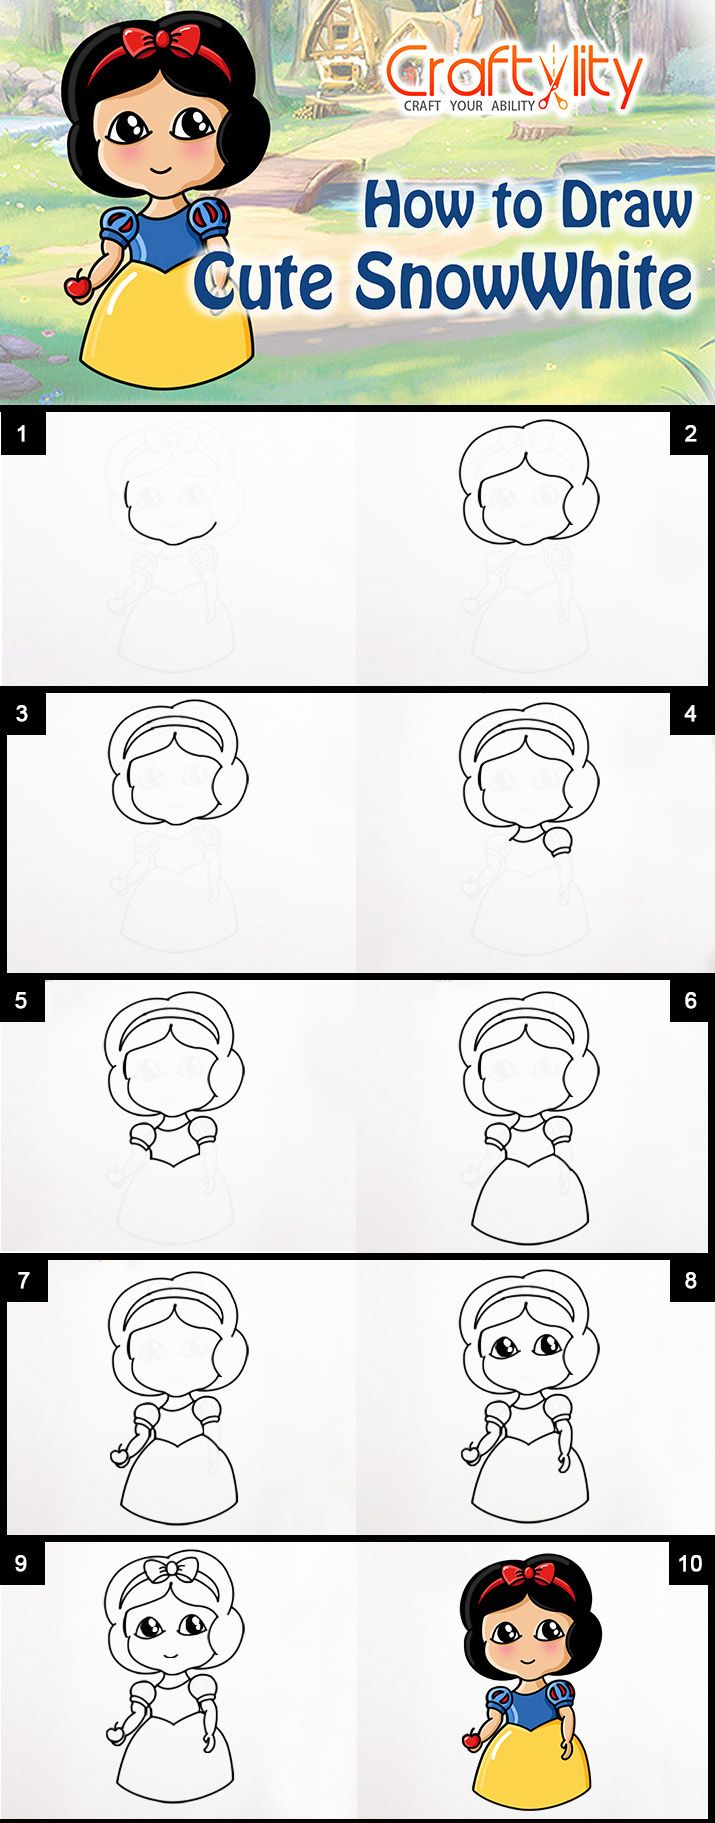 How to draw princess jasmine from aladdin printable step by step - Follow Easy Step By Step Instructions On How To Draw Cute Disney Princess Snow White